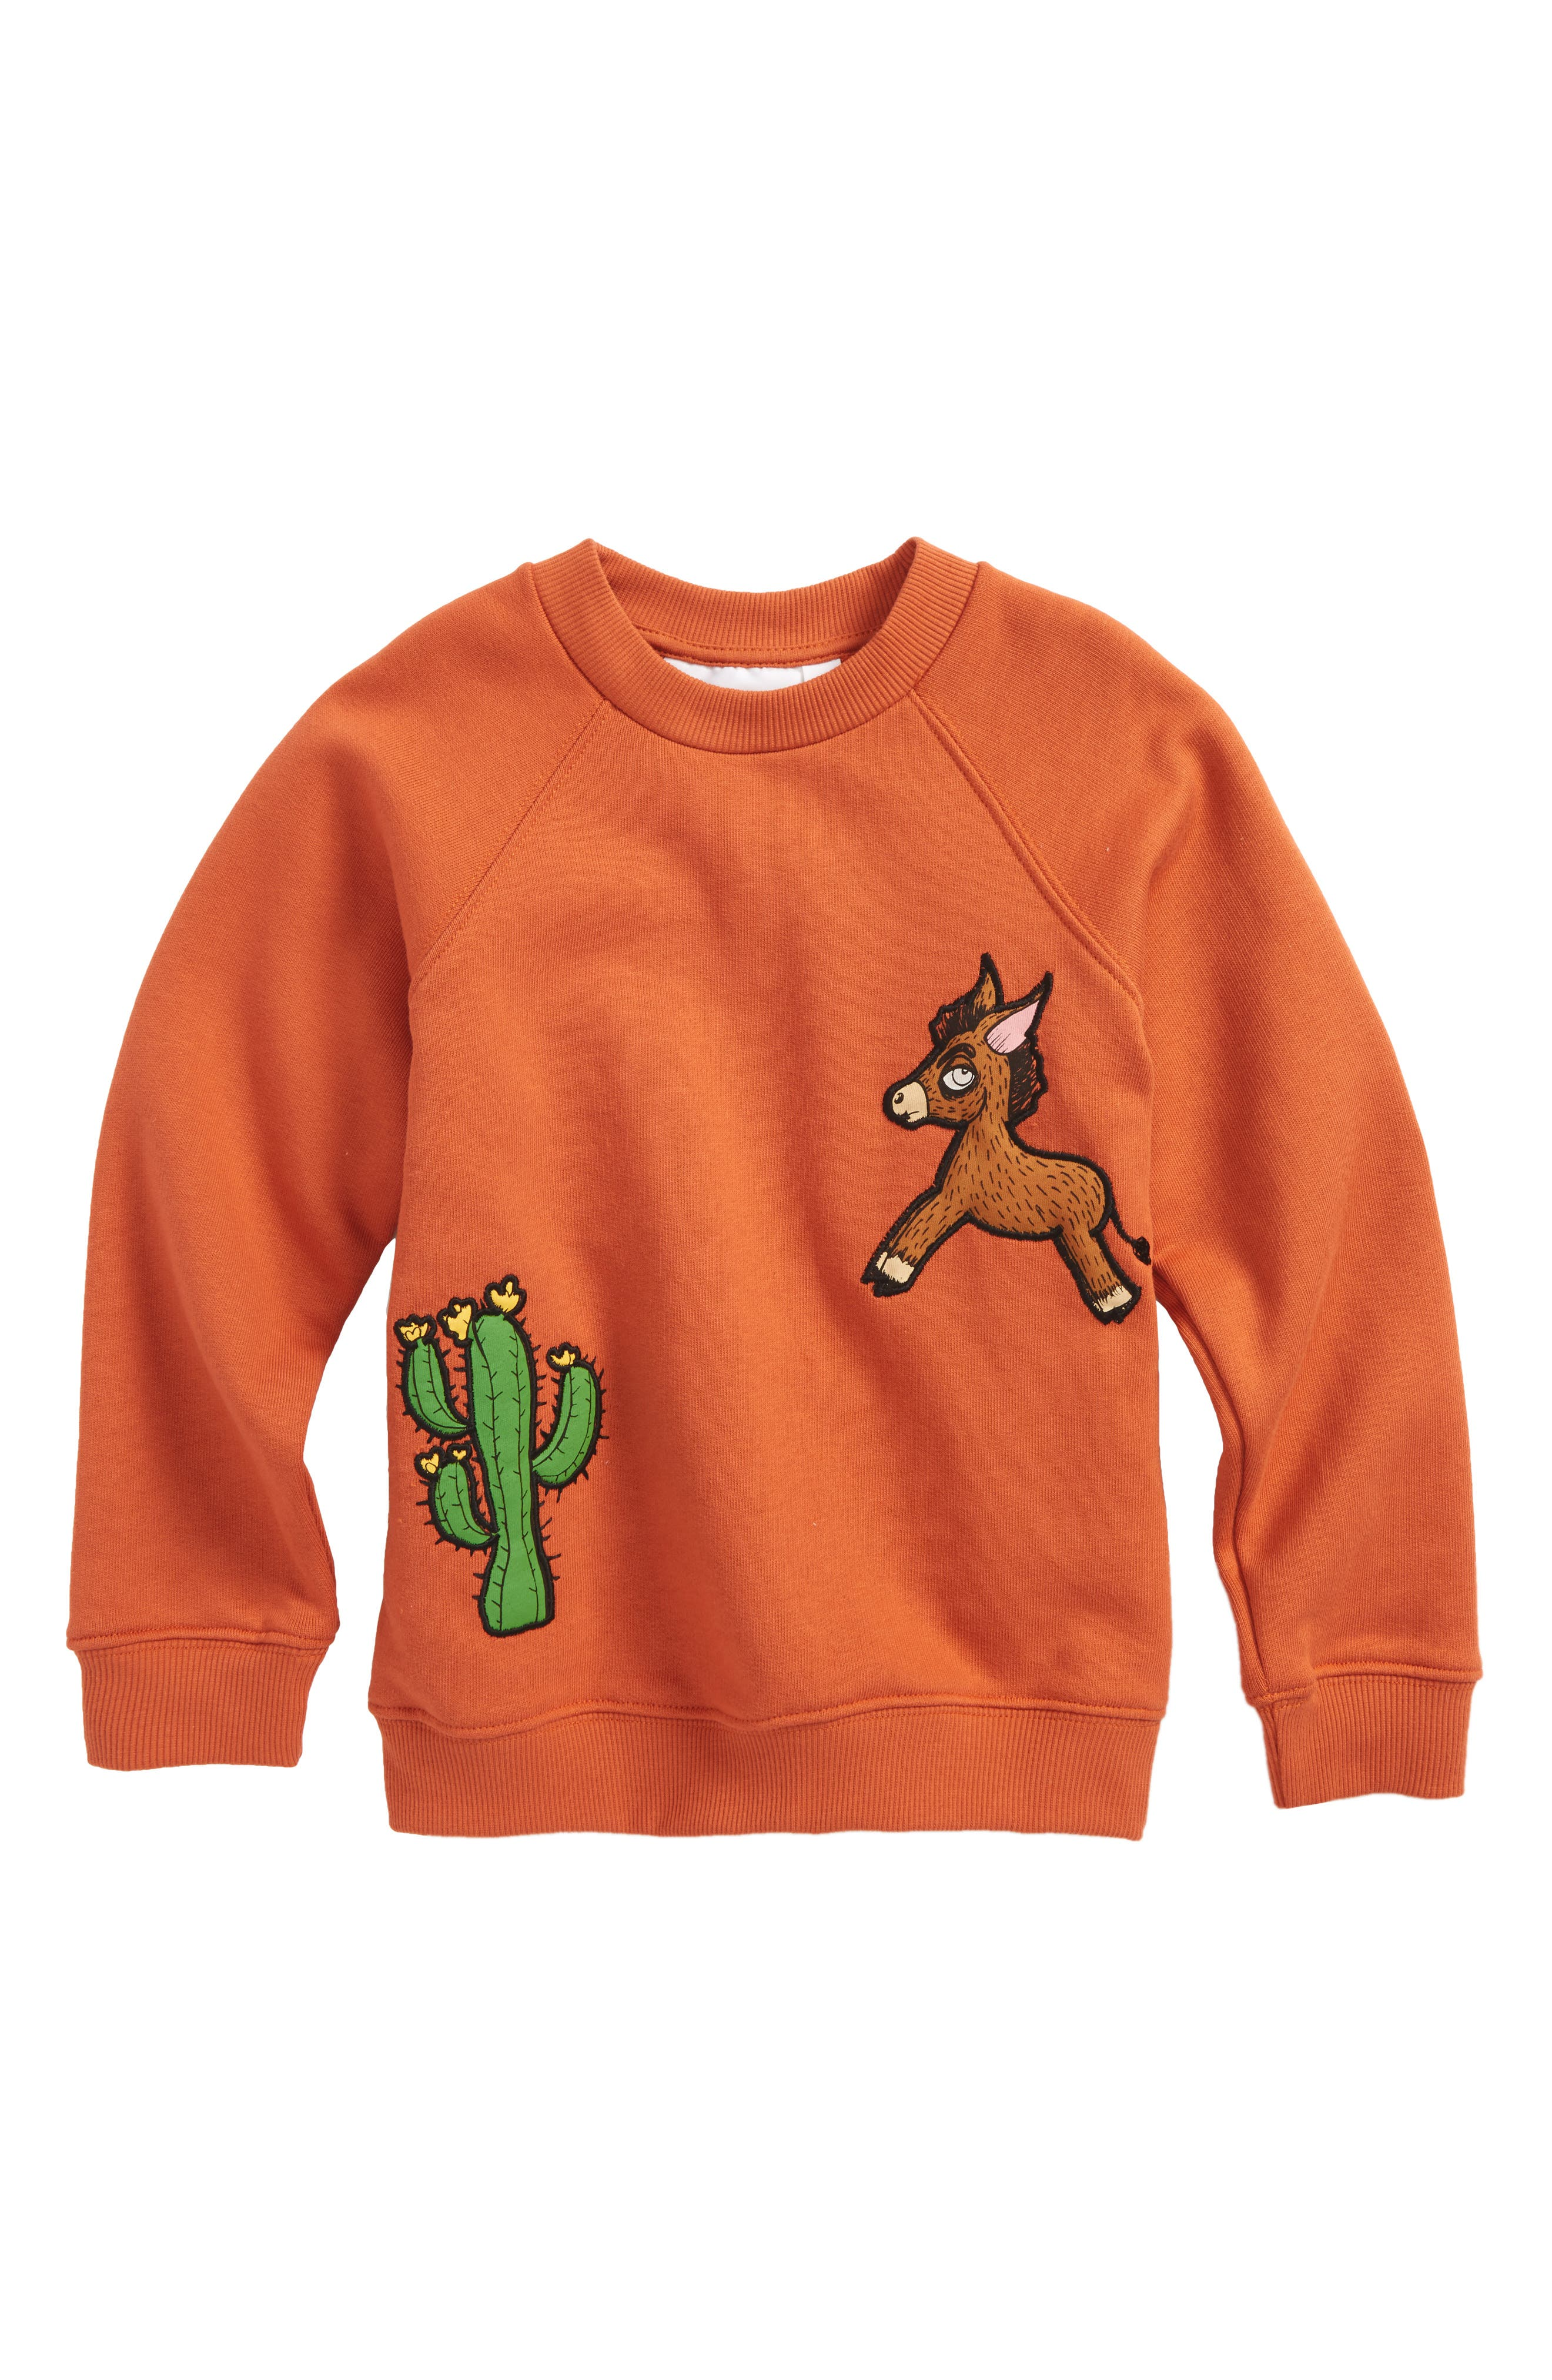 Donkey & Cactus Appliqué Organic Cotton Sweatshirt,                         Main,                         color, Orange